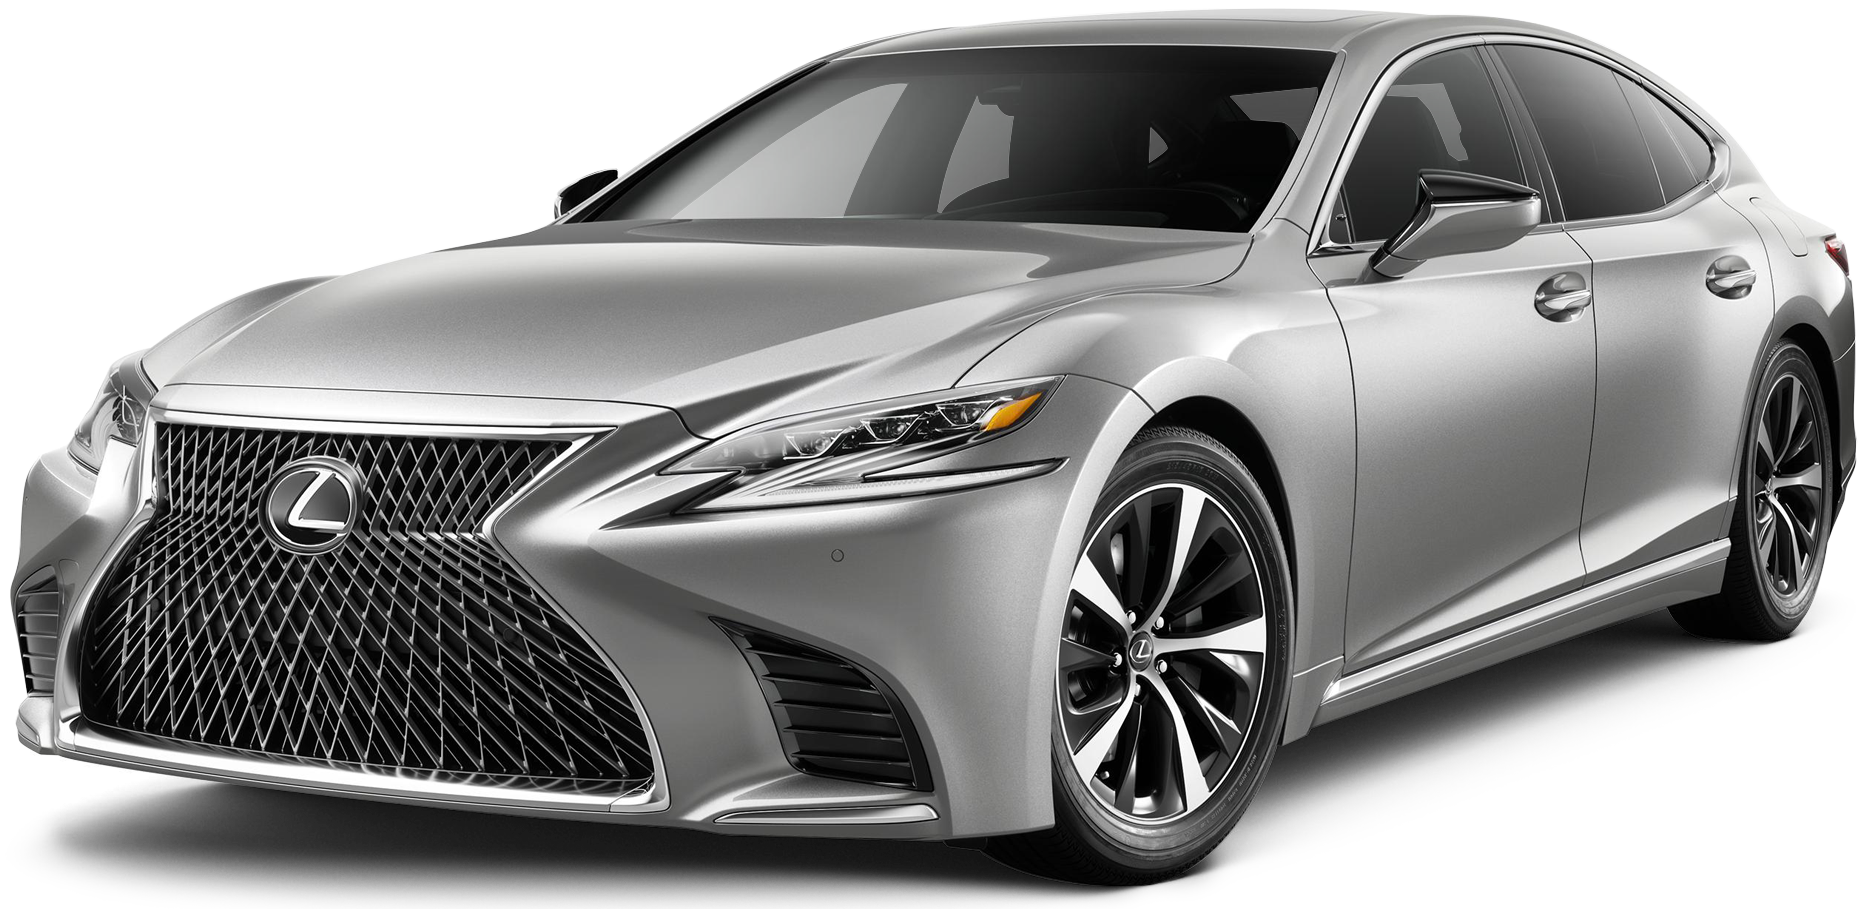 2019 Lexus LS 500 Incentives, Specials & Offers In Plano TX